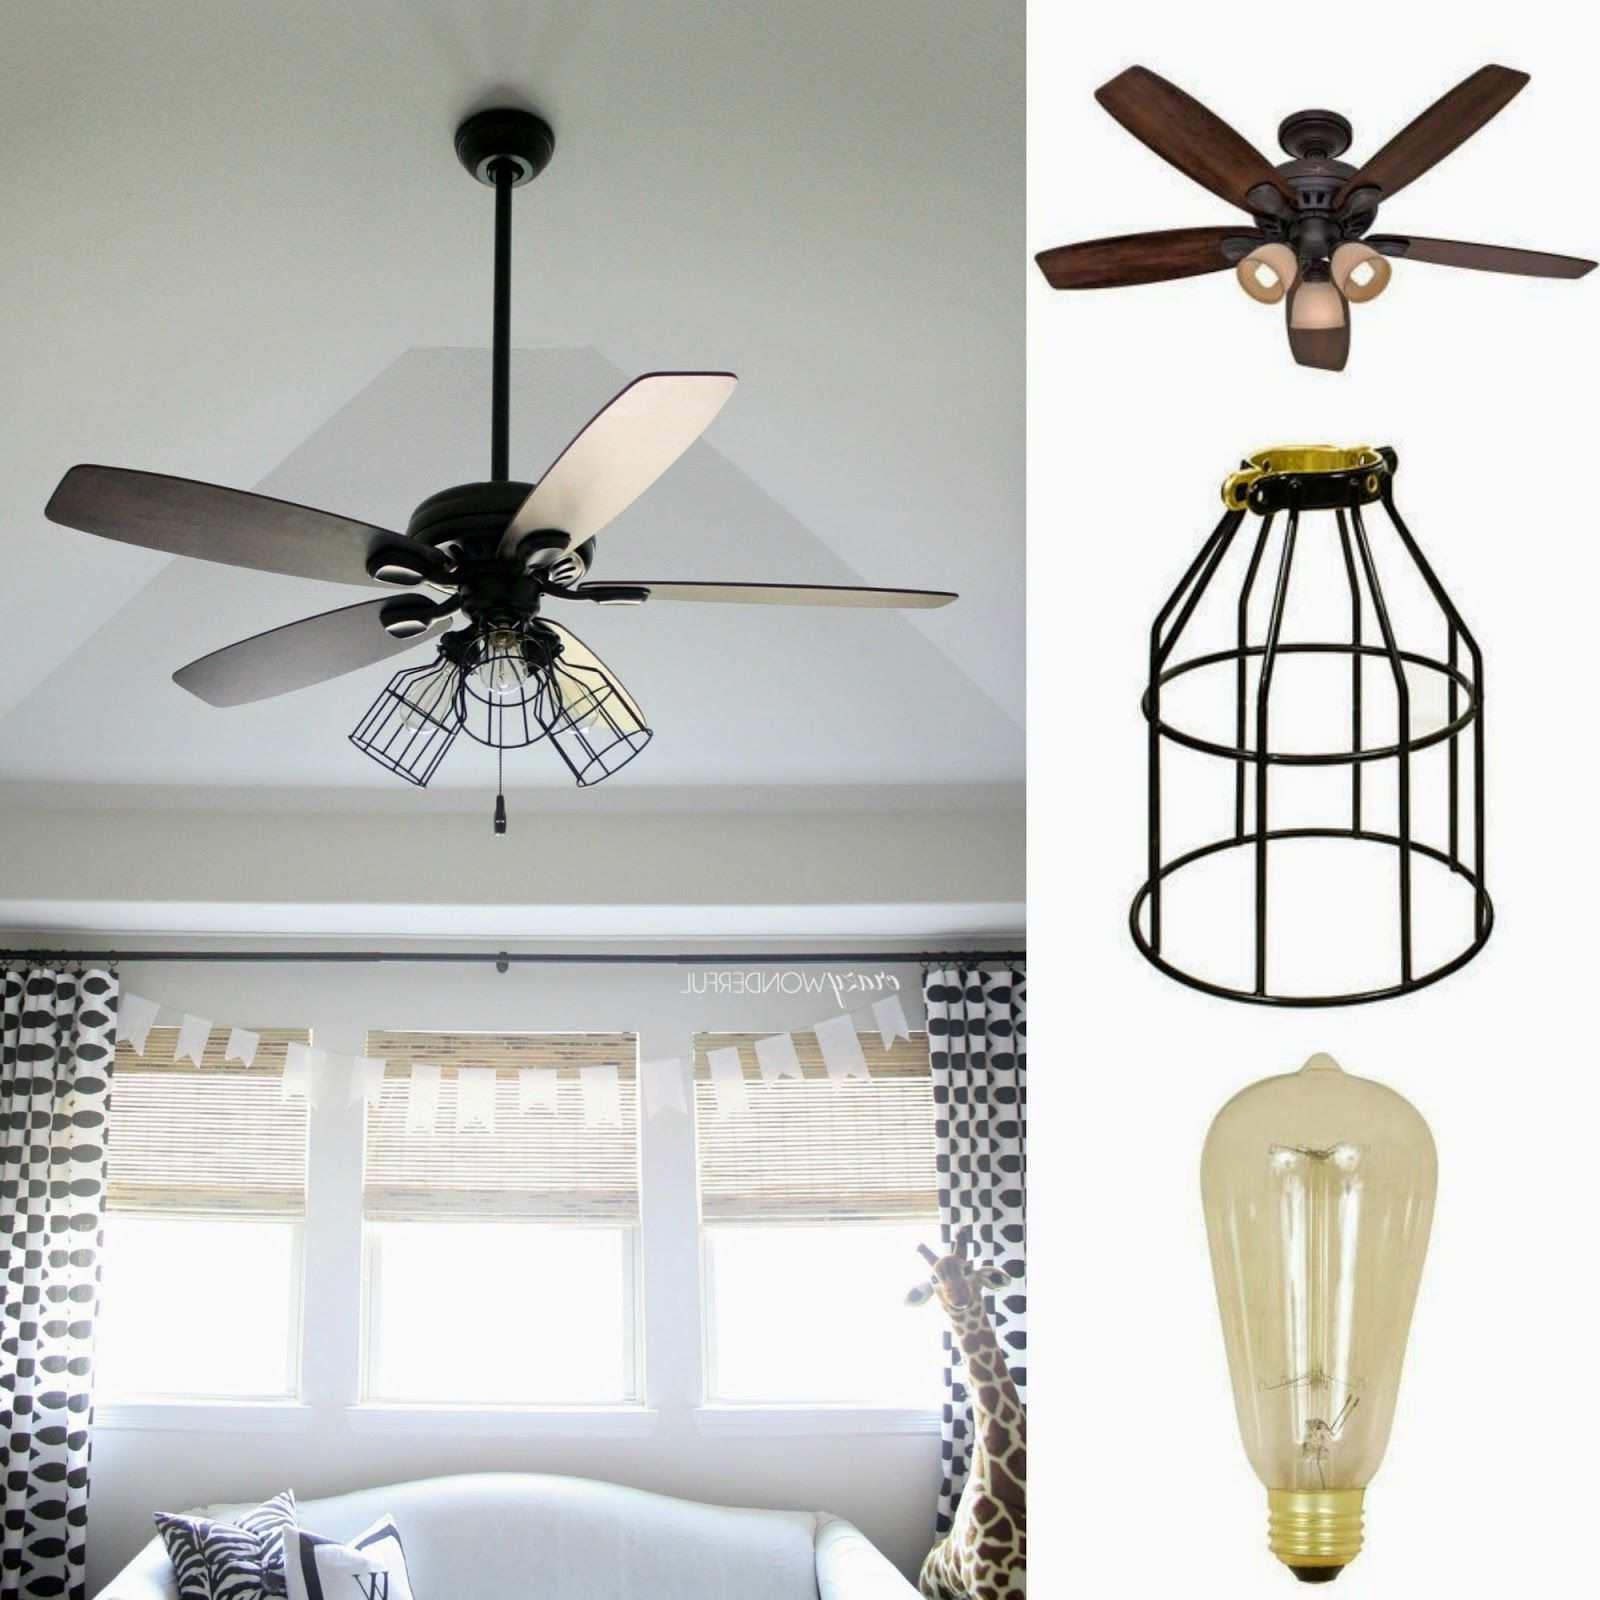 Ceiling Fan With Mason Jar Lights Lovely Dark Aged Bronze Outdoor For Most Popular Outdoor Ceiling Fans With Mason Jar Lights (View 2 of 20)